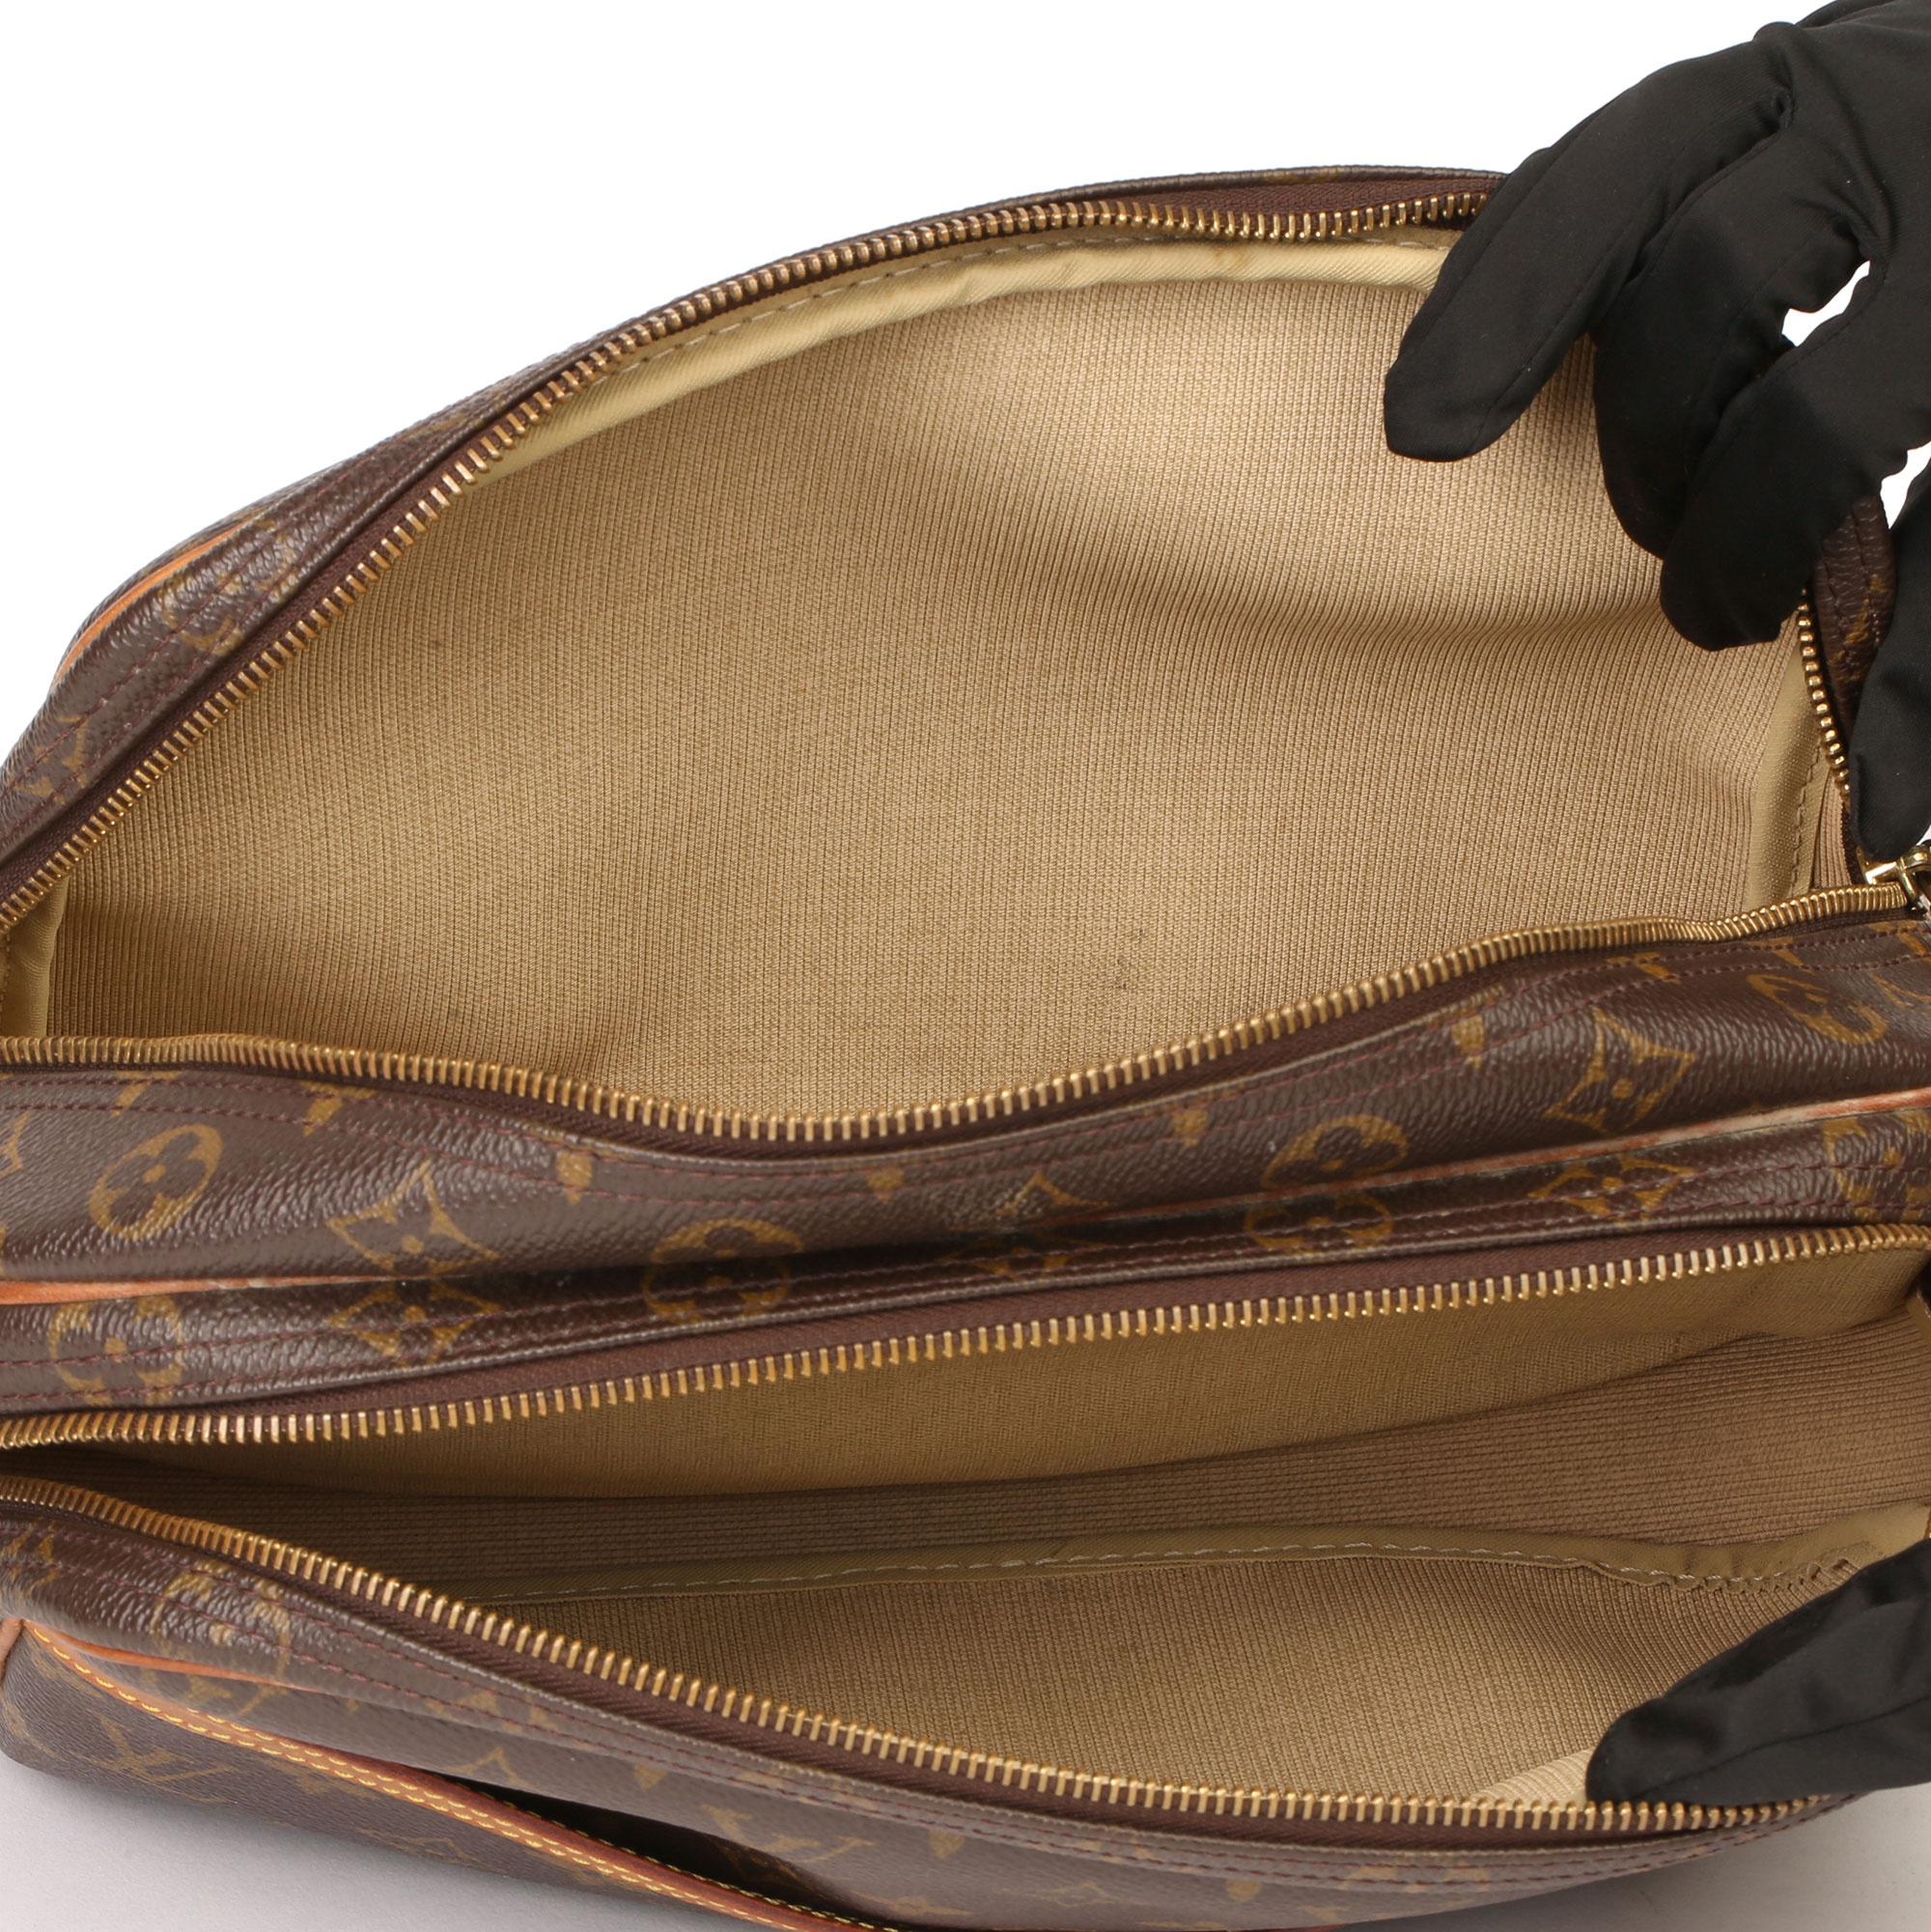 Louis Vuitton Brown Monogram Coated Canvas Vintage Reporter PM - Image 3 of 11